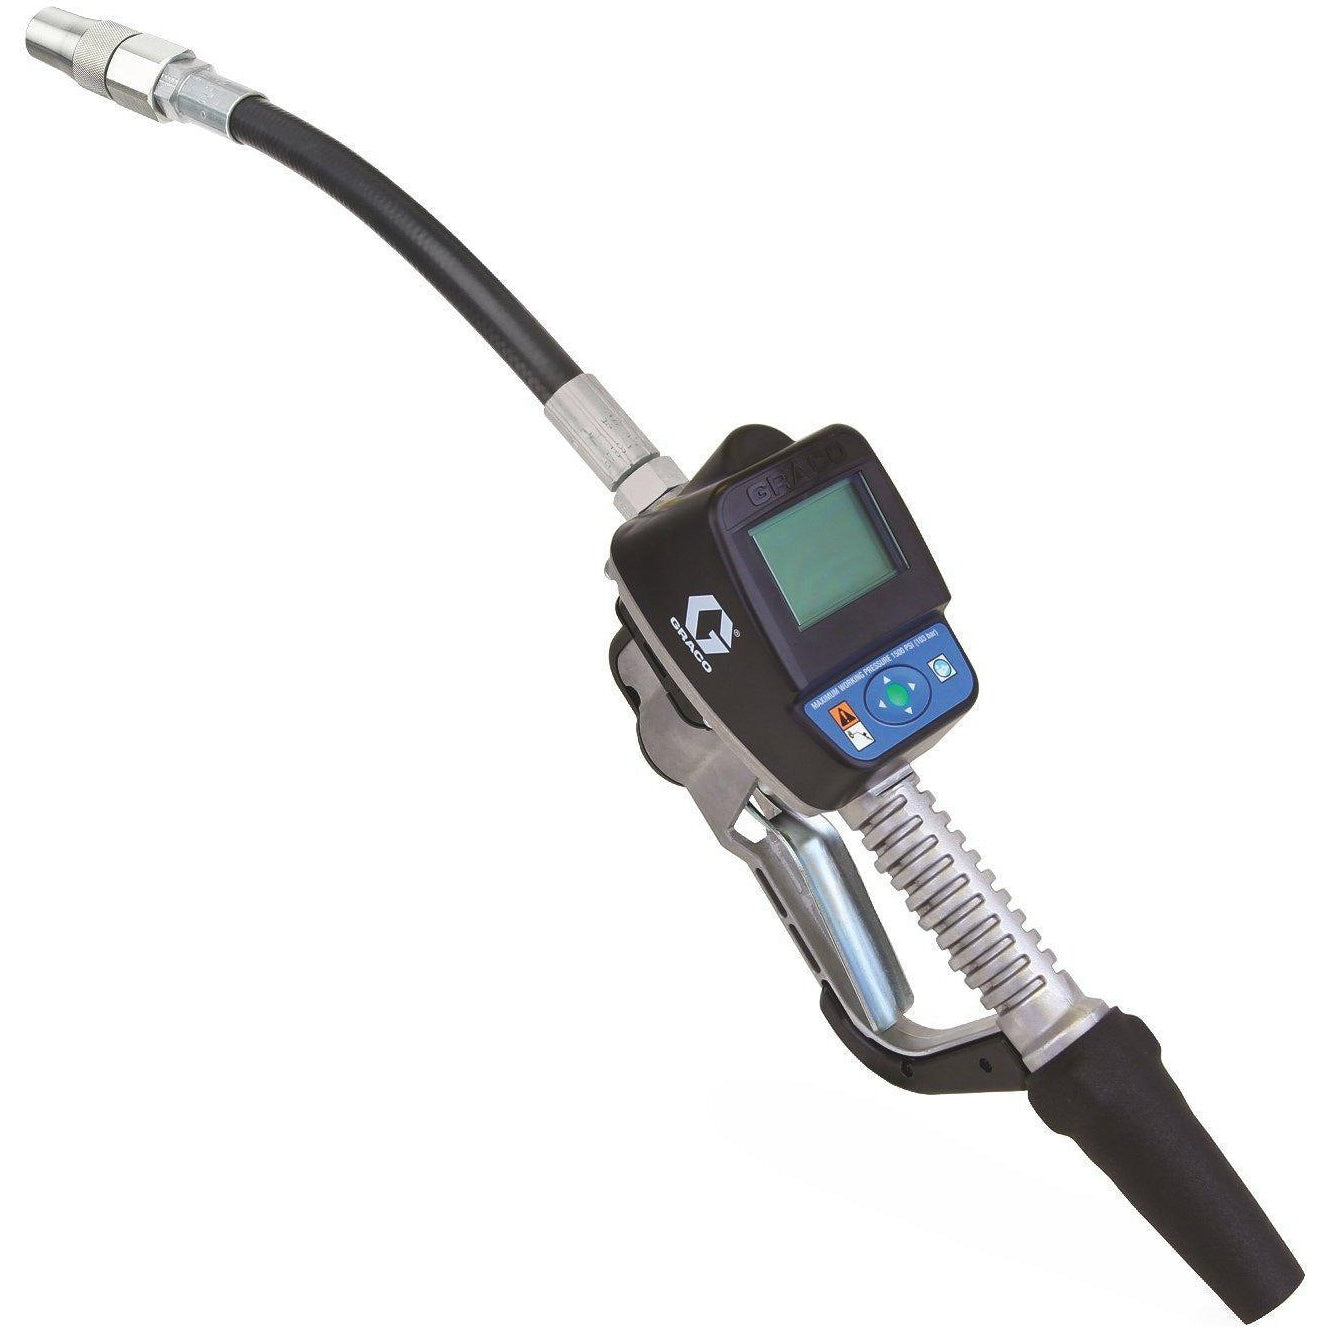 "24H156-Graco 24H156 Sdm15 Series Electronic Manual Oil/Anti-Freeze Meter - Flexible Extension - 3/4"" Inlet - Bspp-Order-Online-Fireball-Equipment"